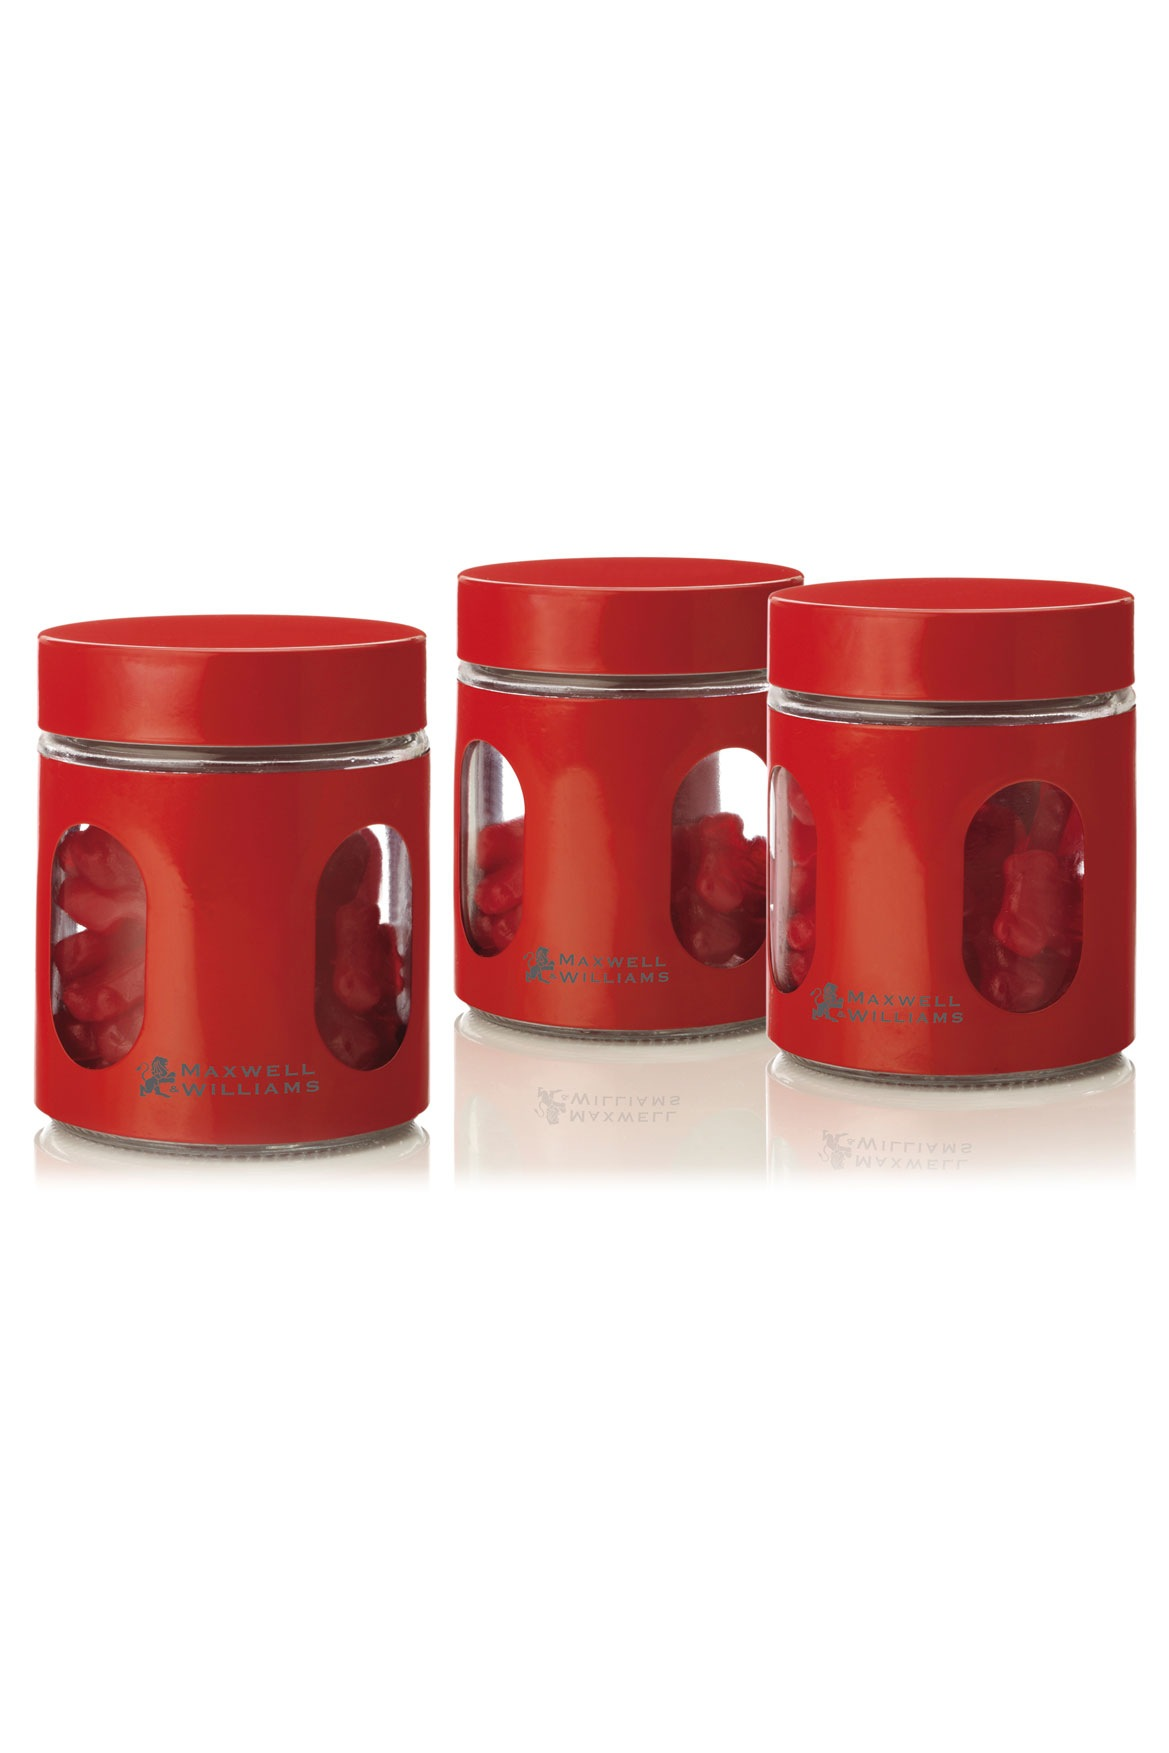 Maxwell & Williams  Cosmopolitan Colours Canister Set 3 Gift Boxed, 600ml   Red  Myer Online